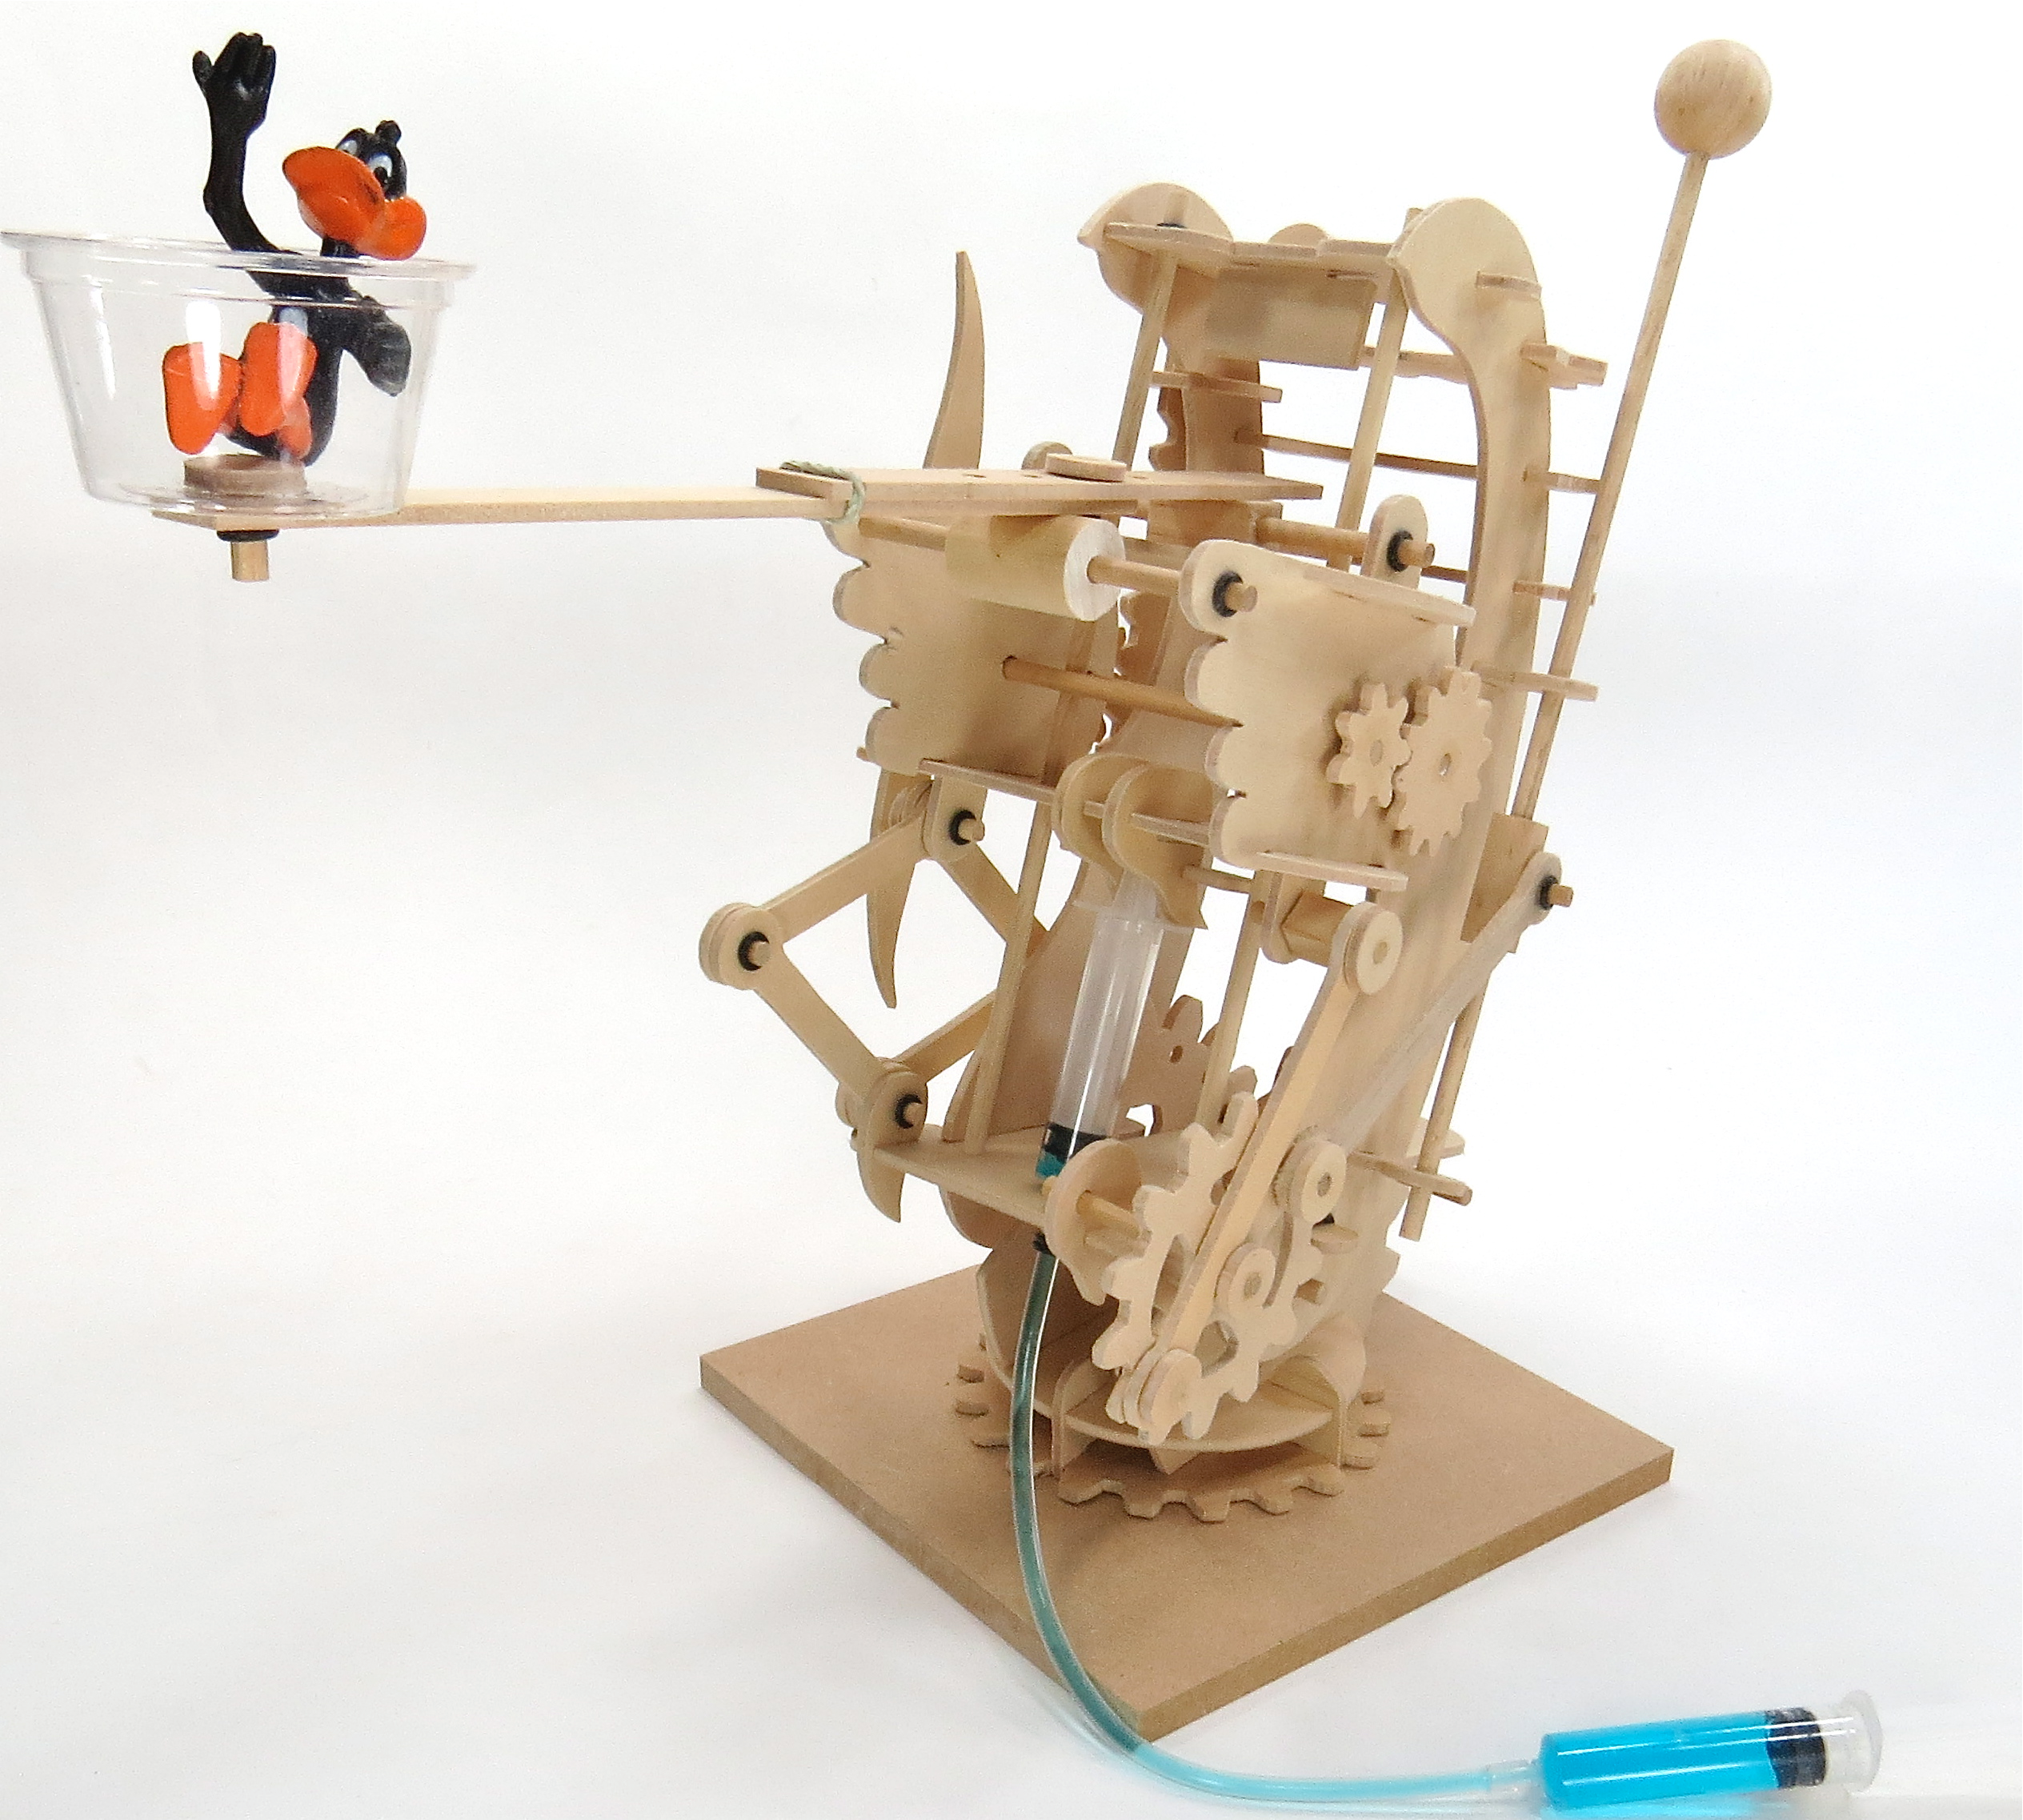 Simple Hydraulic Robotic Arm Designs : Hydraulic gearbot pathfinders